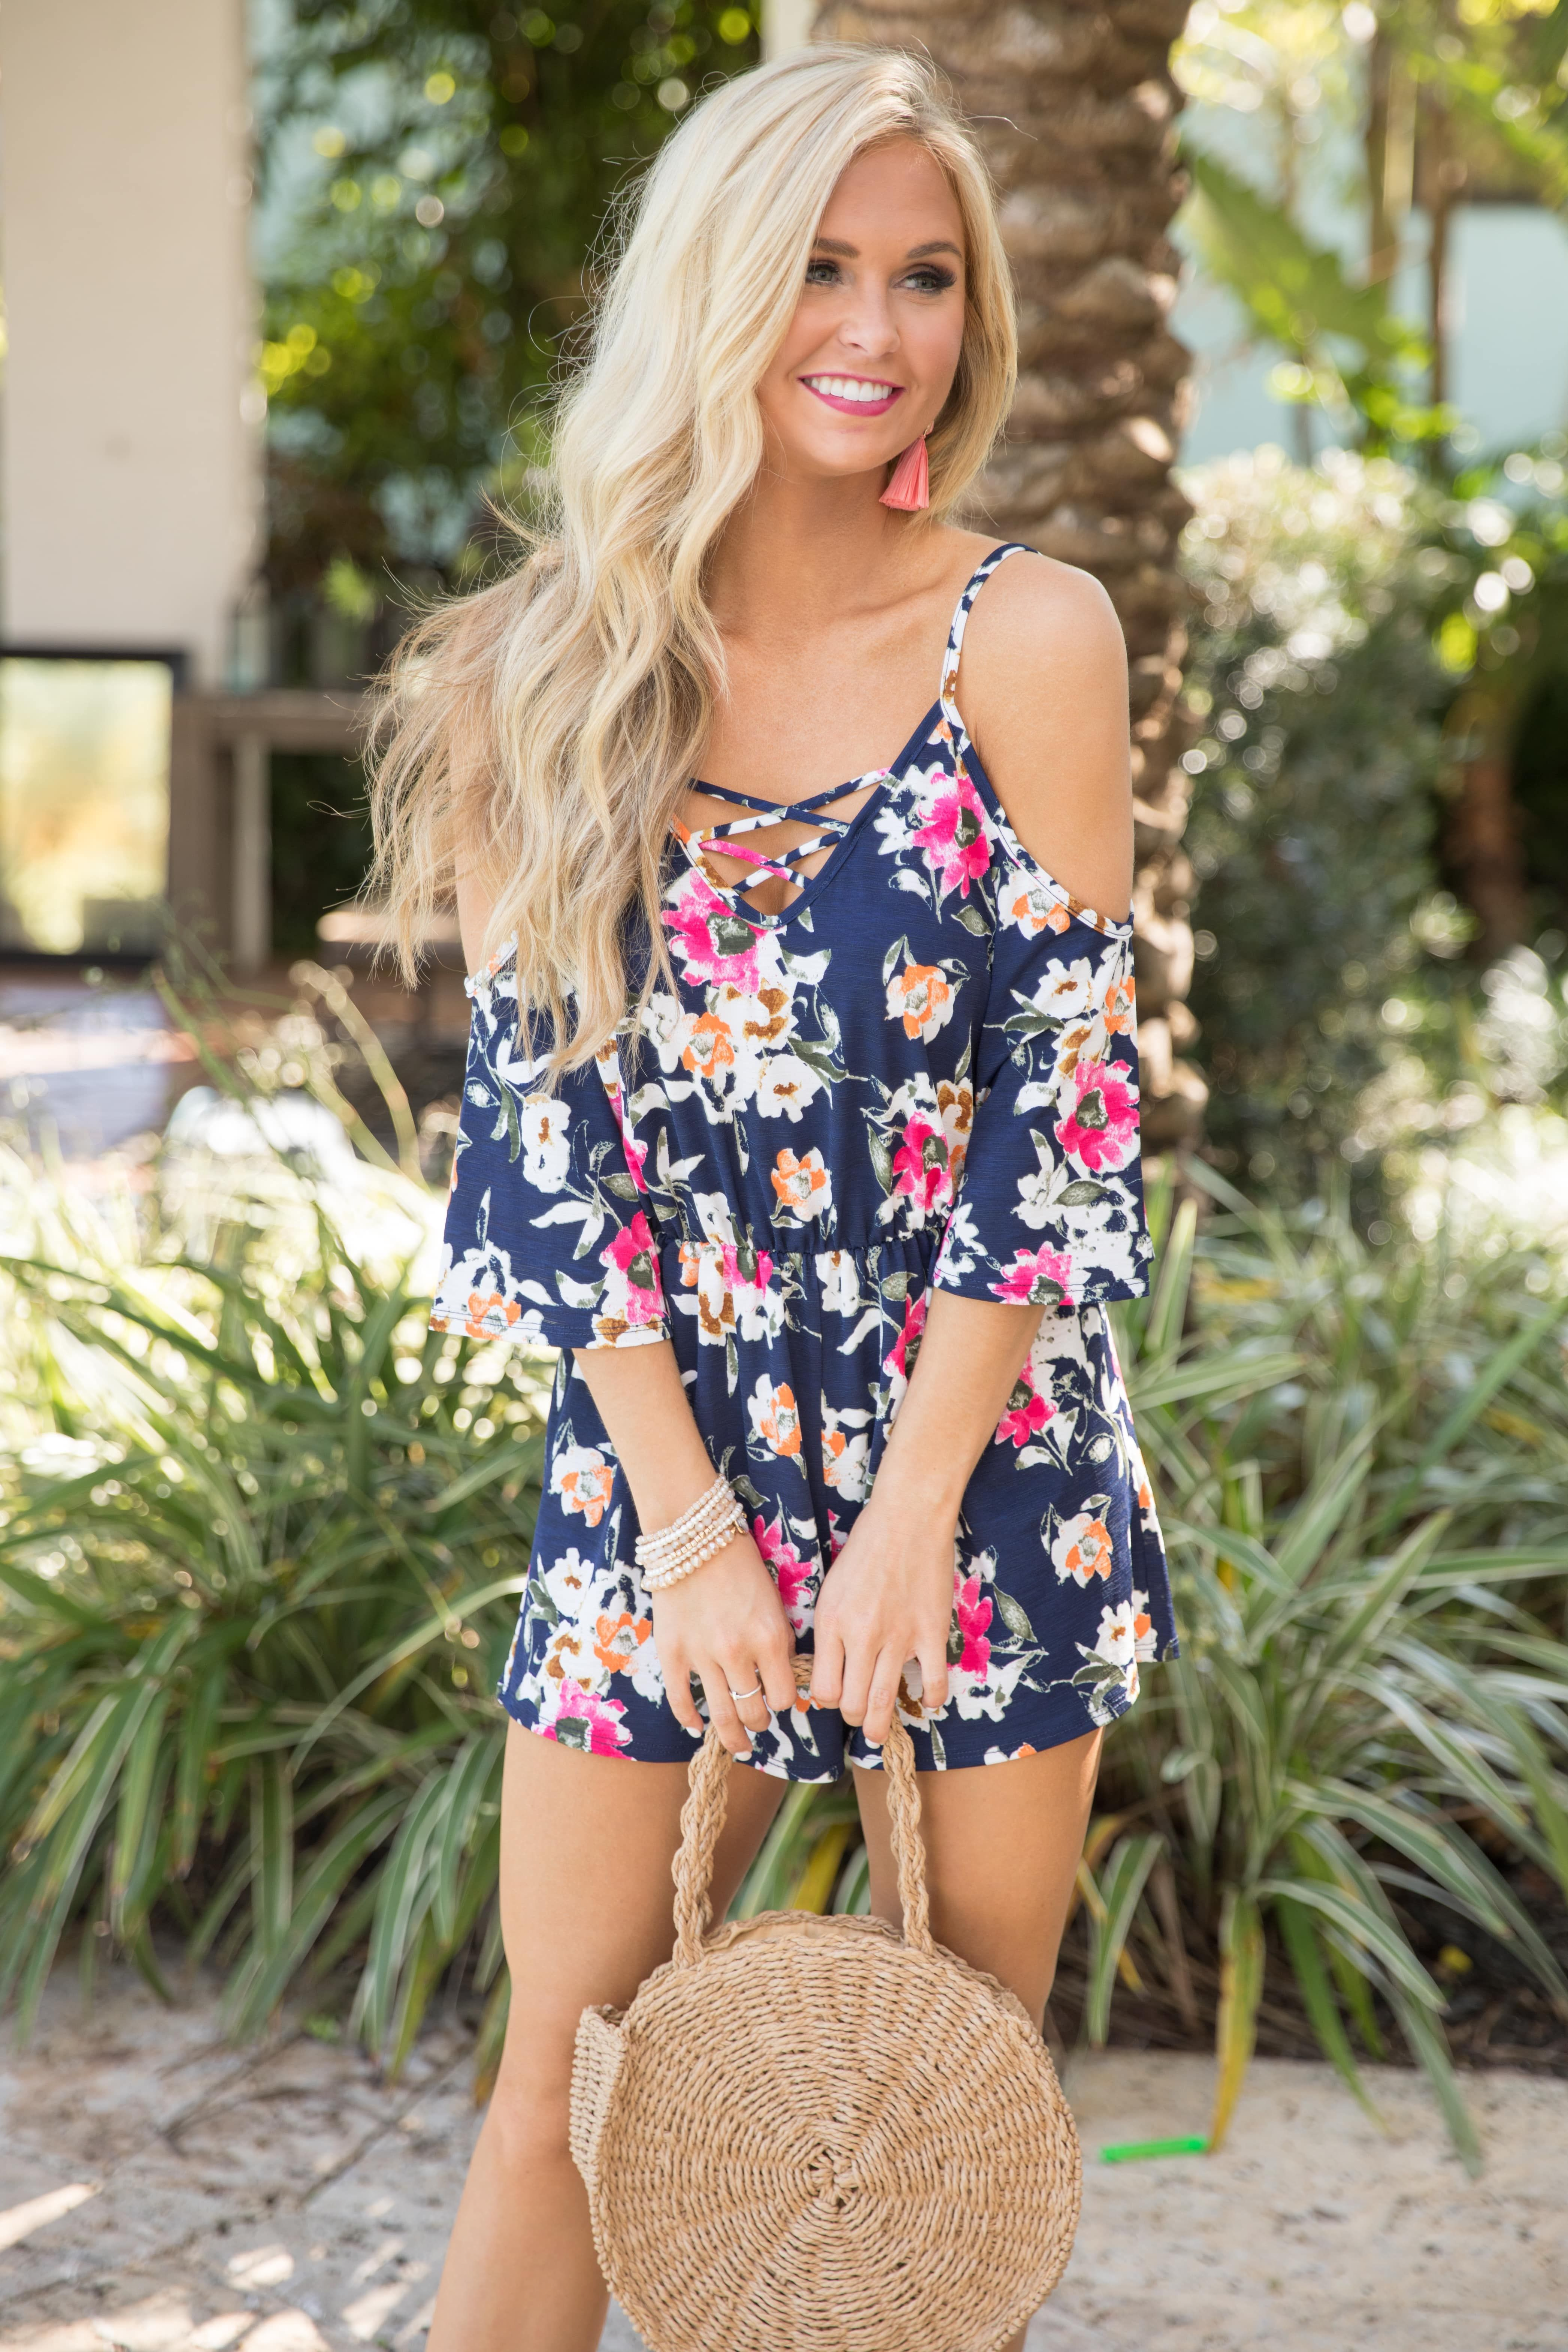 f1a7e6f374c0 This sweet floral romper is the perfect combination of spring prints and  summer fun!